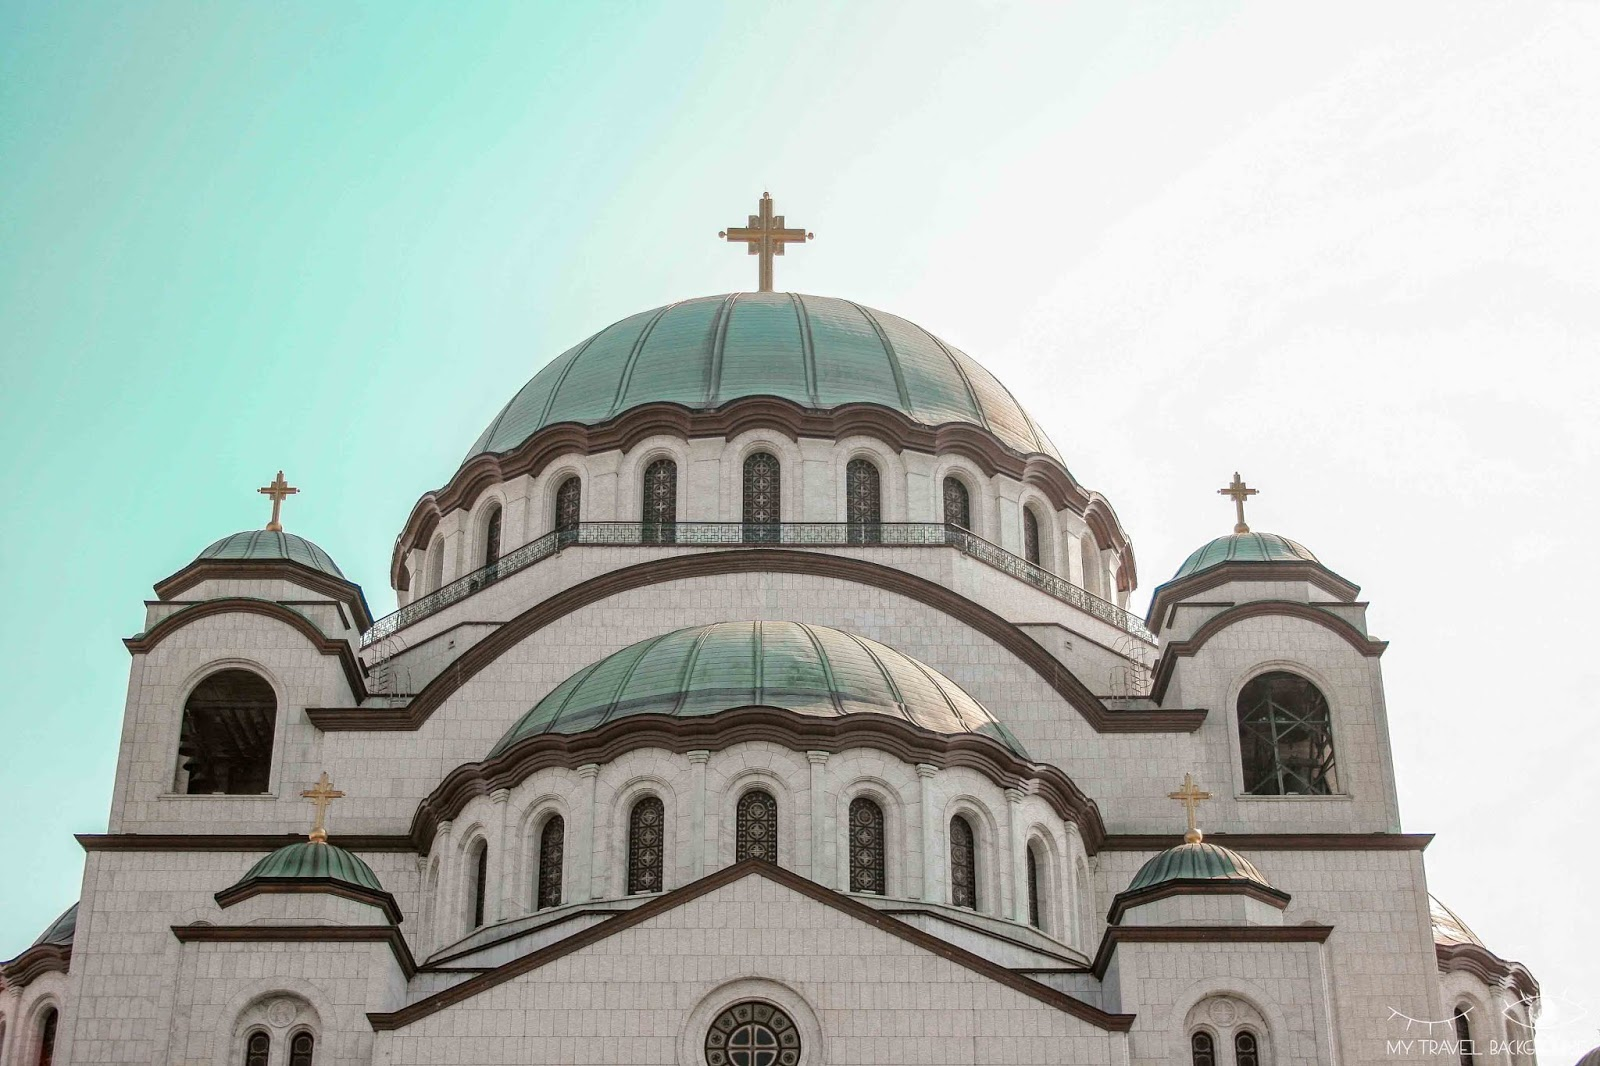 My Travel Background : 1 jour pour visiter Belgrade, la capitale de la Serbie - Cathédrale Saint-Sava